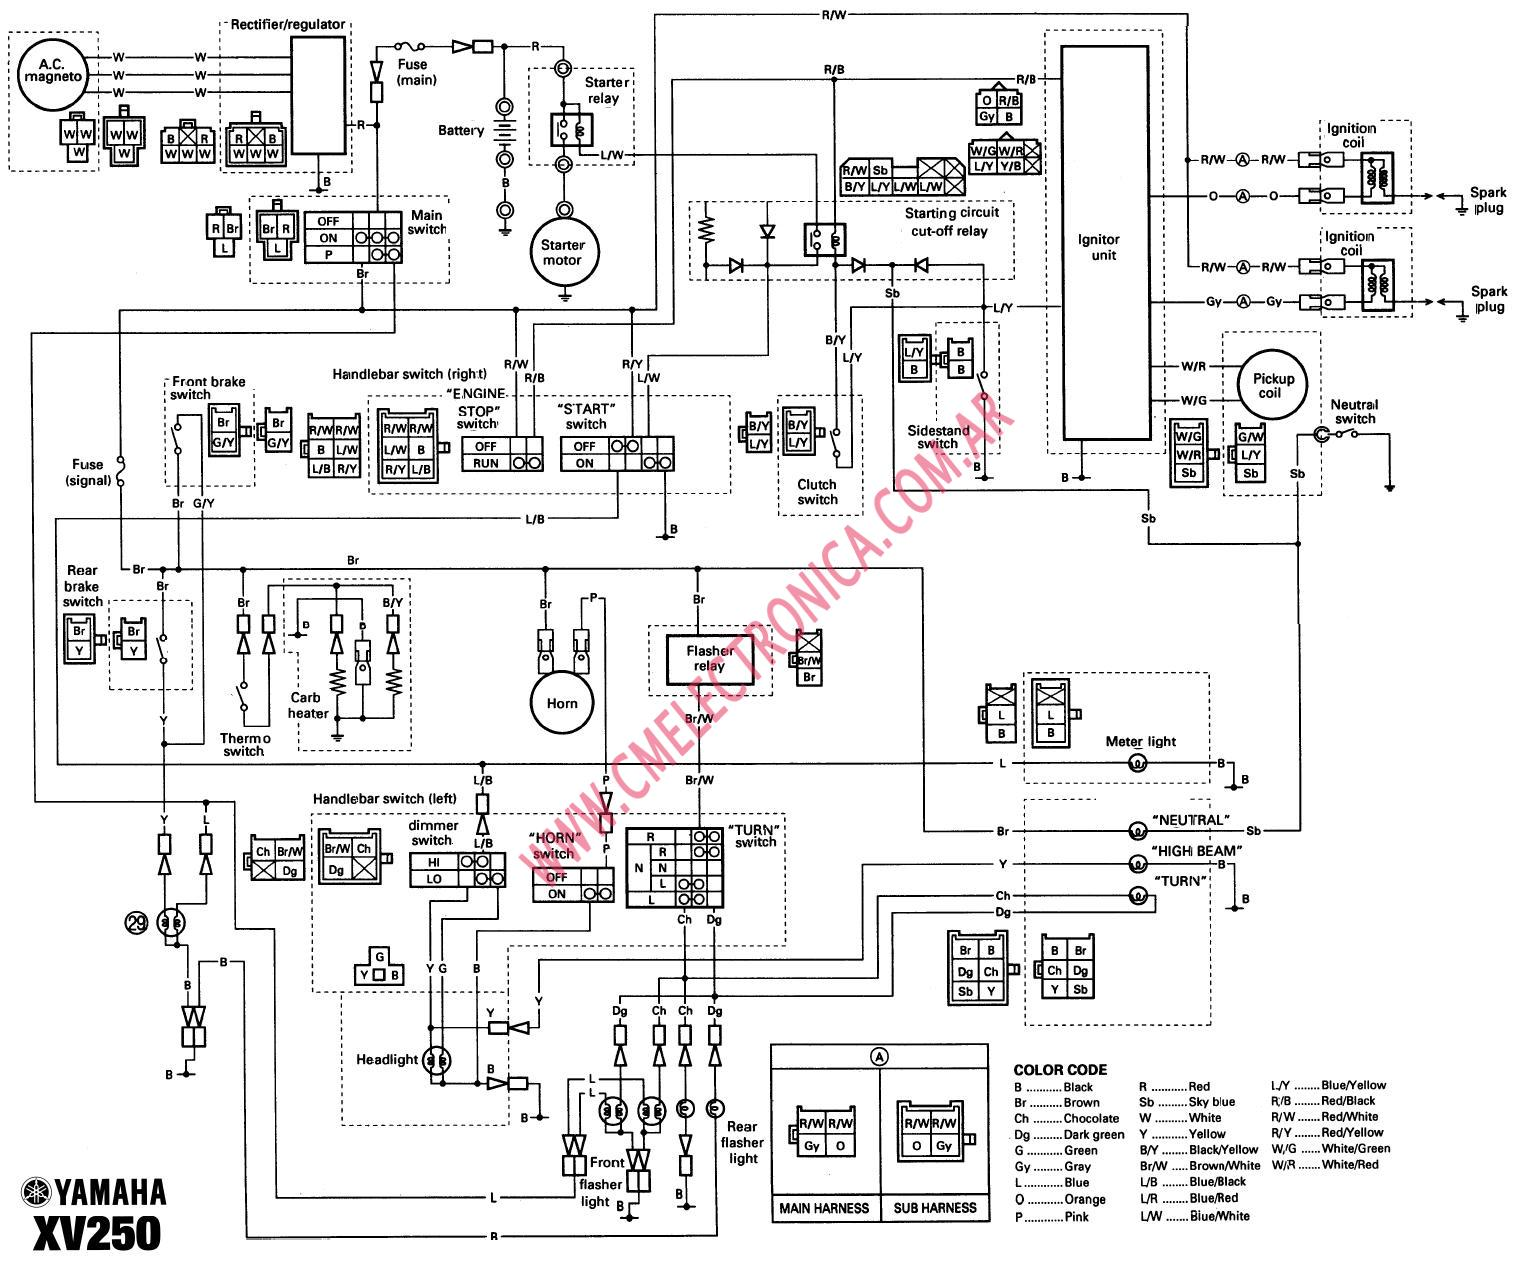 mercury outboard motor wiring diagrams images mercury mercury outboard key switch wiring also 36 volt club car